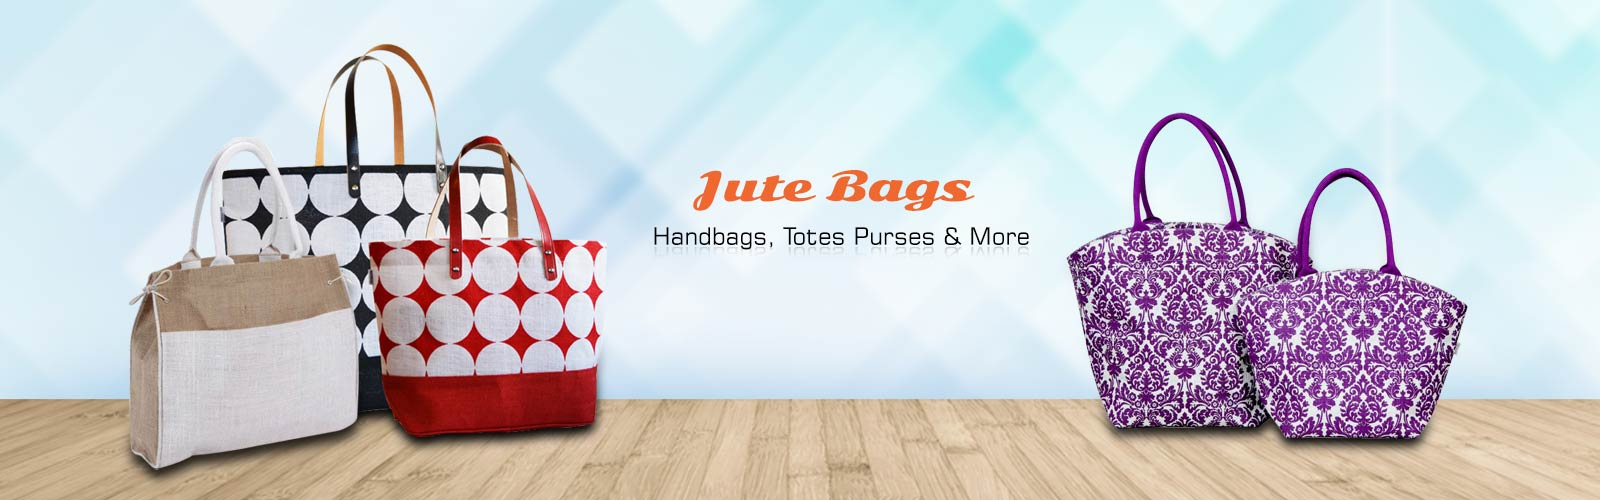 Wholesale Jute Bag Supplier in Italy